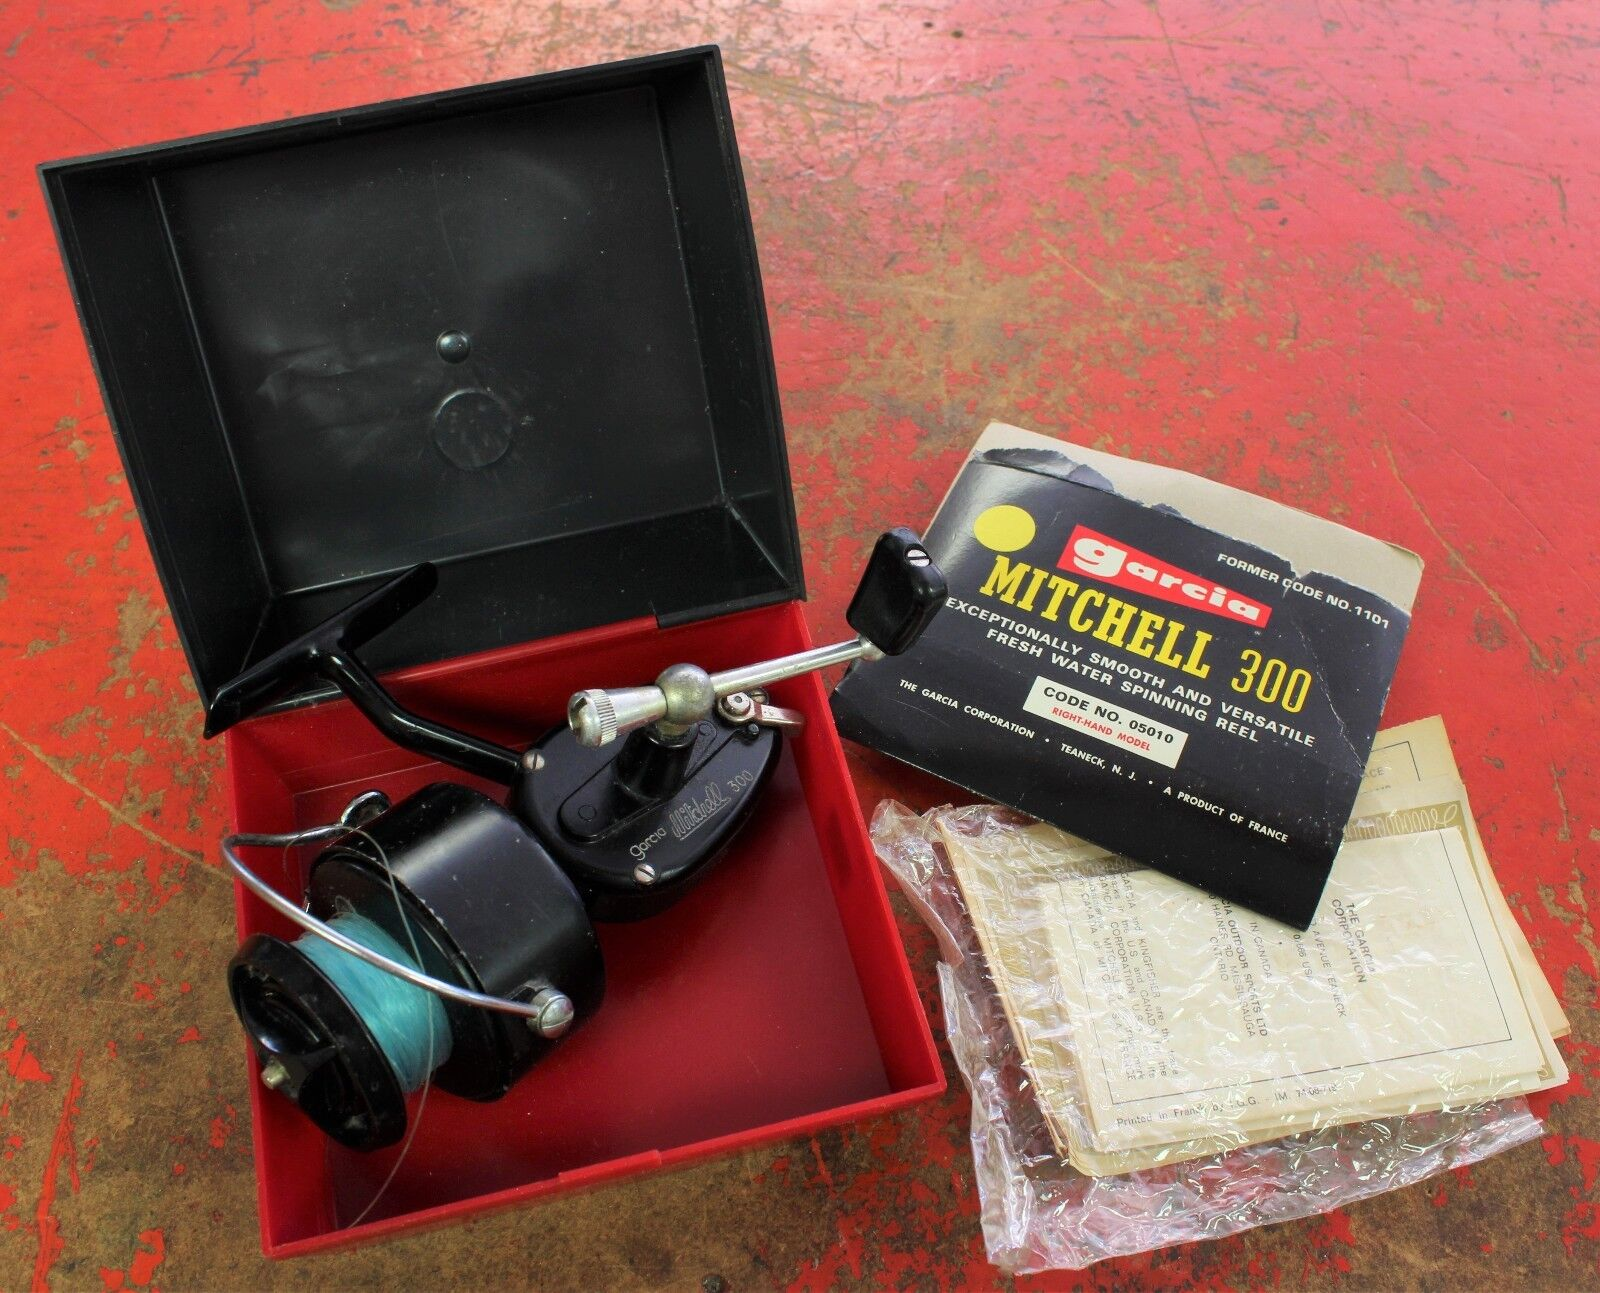 Garcia Mitchell 300 Spinning Reel - Original Clamshell Container